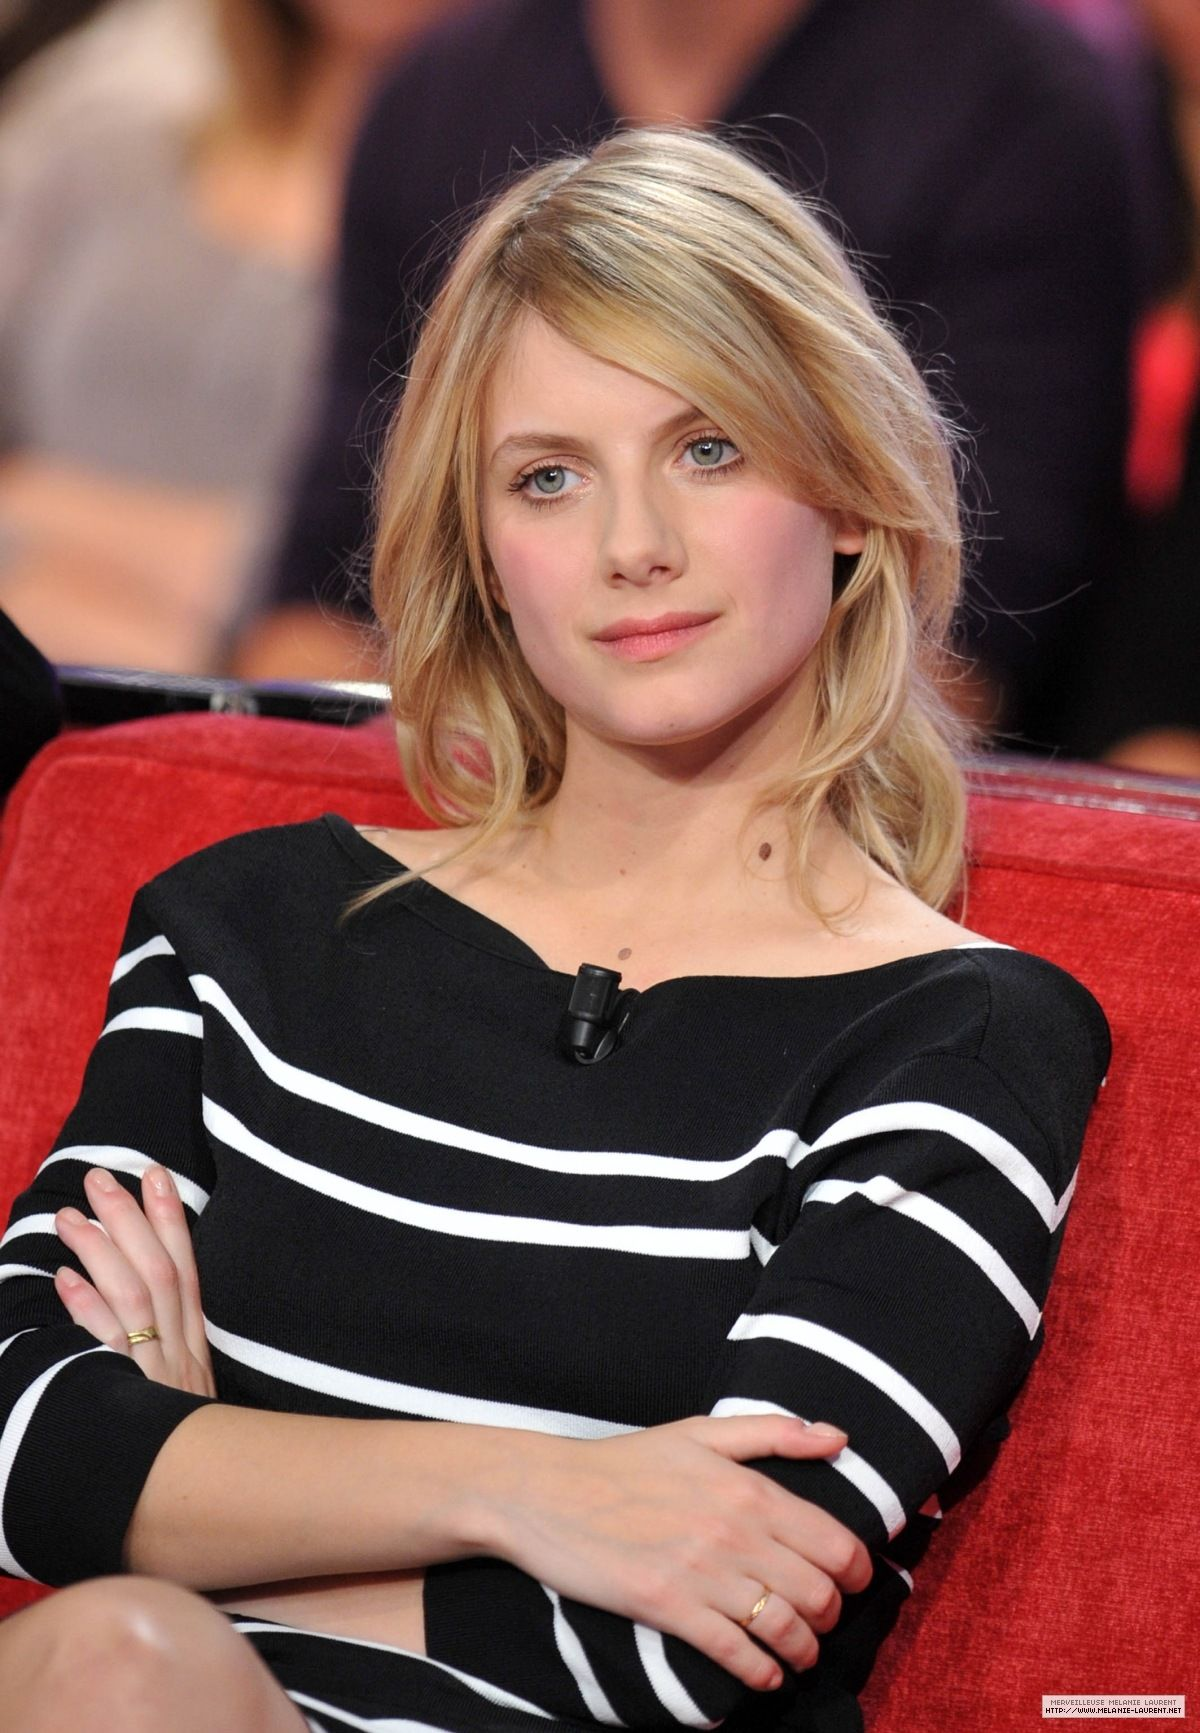 Cleavage Melanie Laurent nudes (39 photos), Sexy, Fappening, Selfie, butt 2015